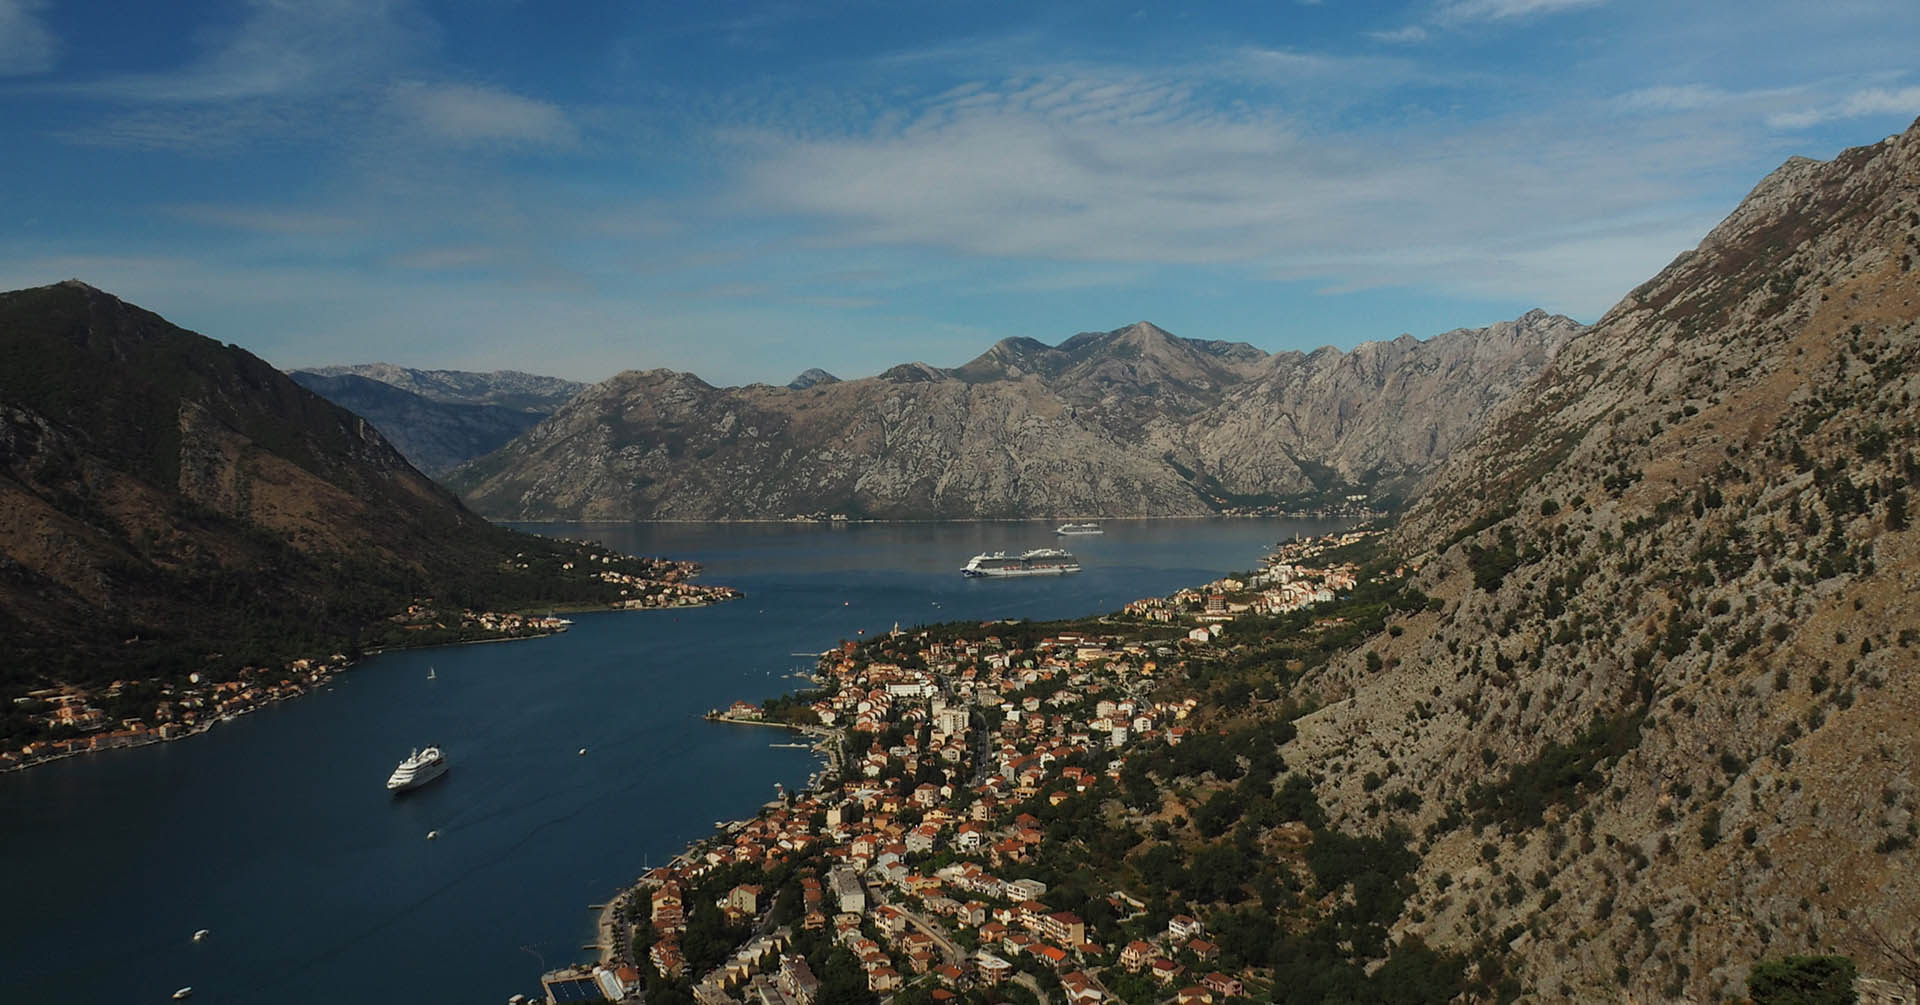 View of Bay of Kotor from the fortress in Kotor